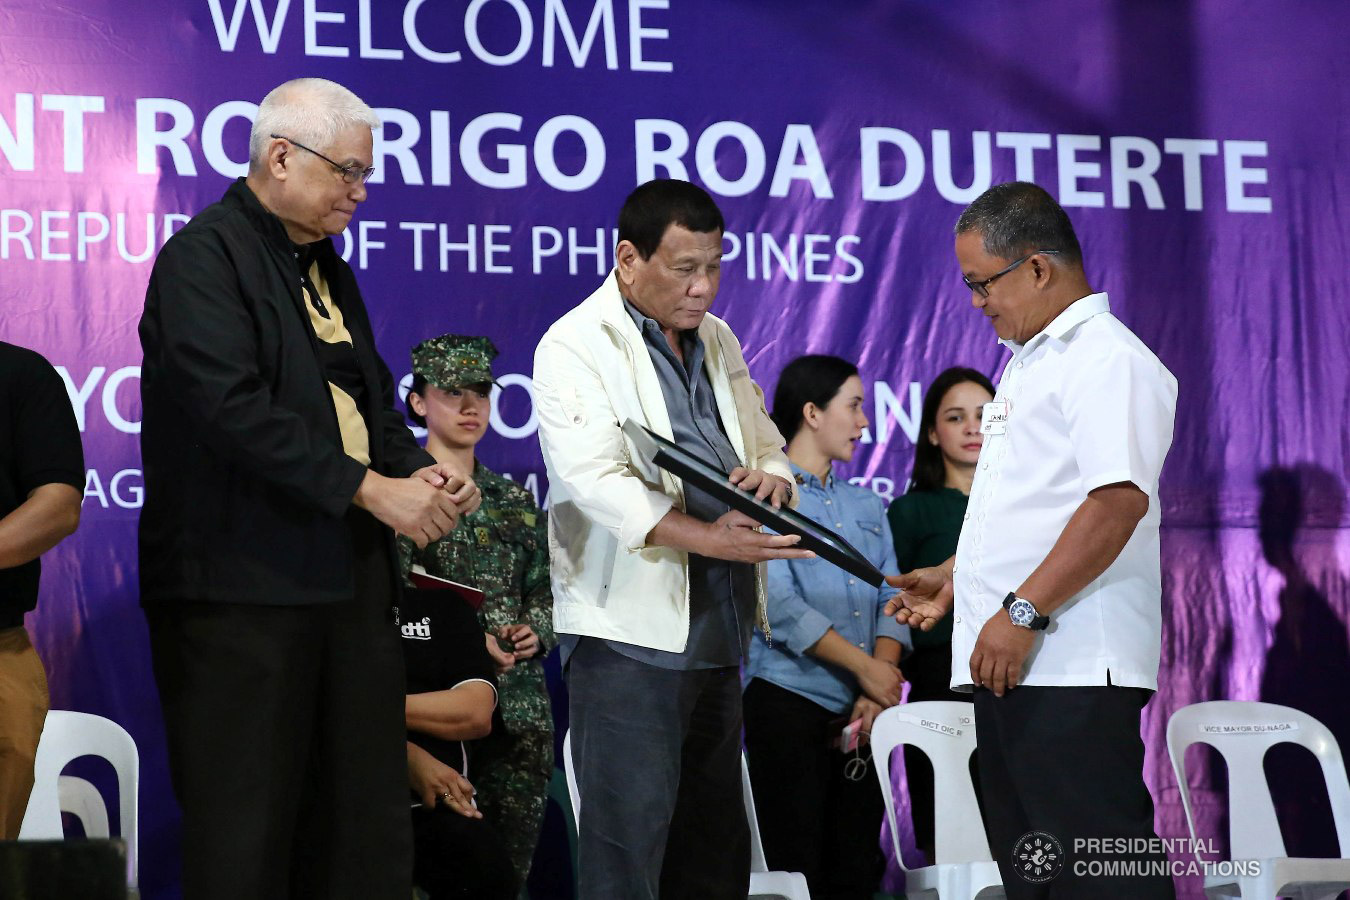 President Rodrigo Roa Duterte hands over the marker for the Department of Information and Communications Technology (DICT) Tech4ED Center to a school official from one of the recipient schools in Masbate, during the Negosyo Serbisyo sa Barangay held at the Patio Milagros Minitel and Resort in Dimasalang, Masbate on January 9, 2019. VALERIE ESCALERA/PRESIDENTIAL PHOTO